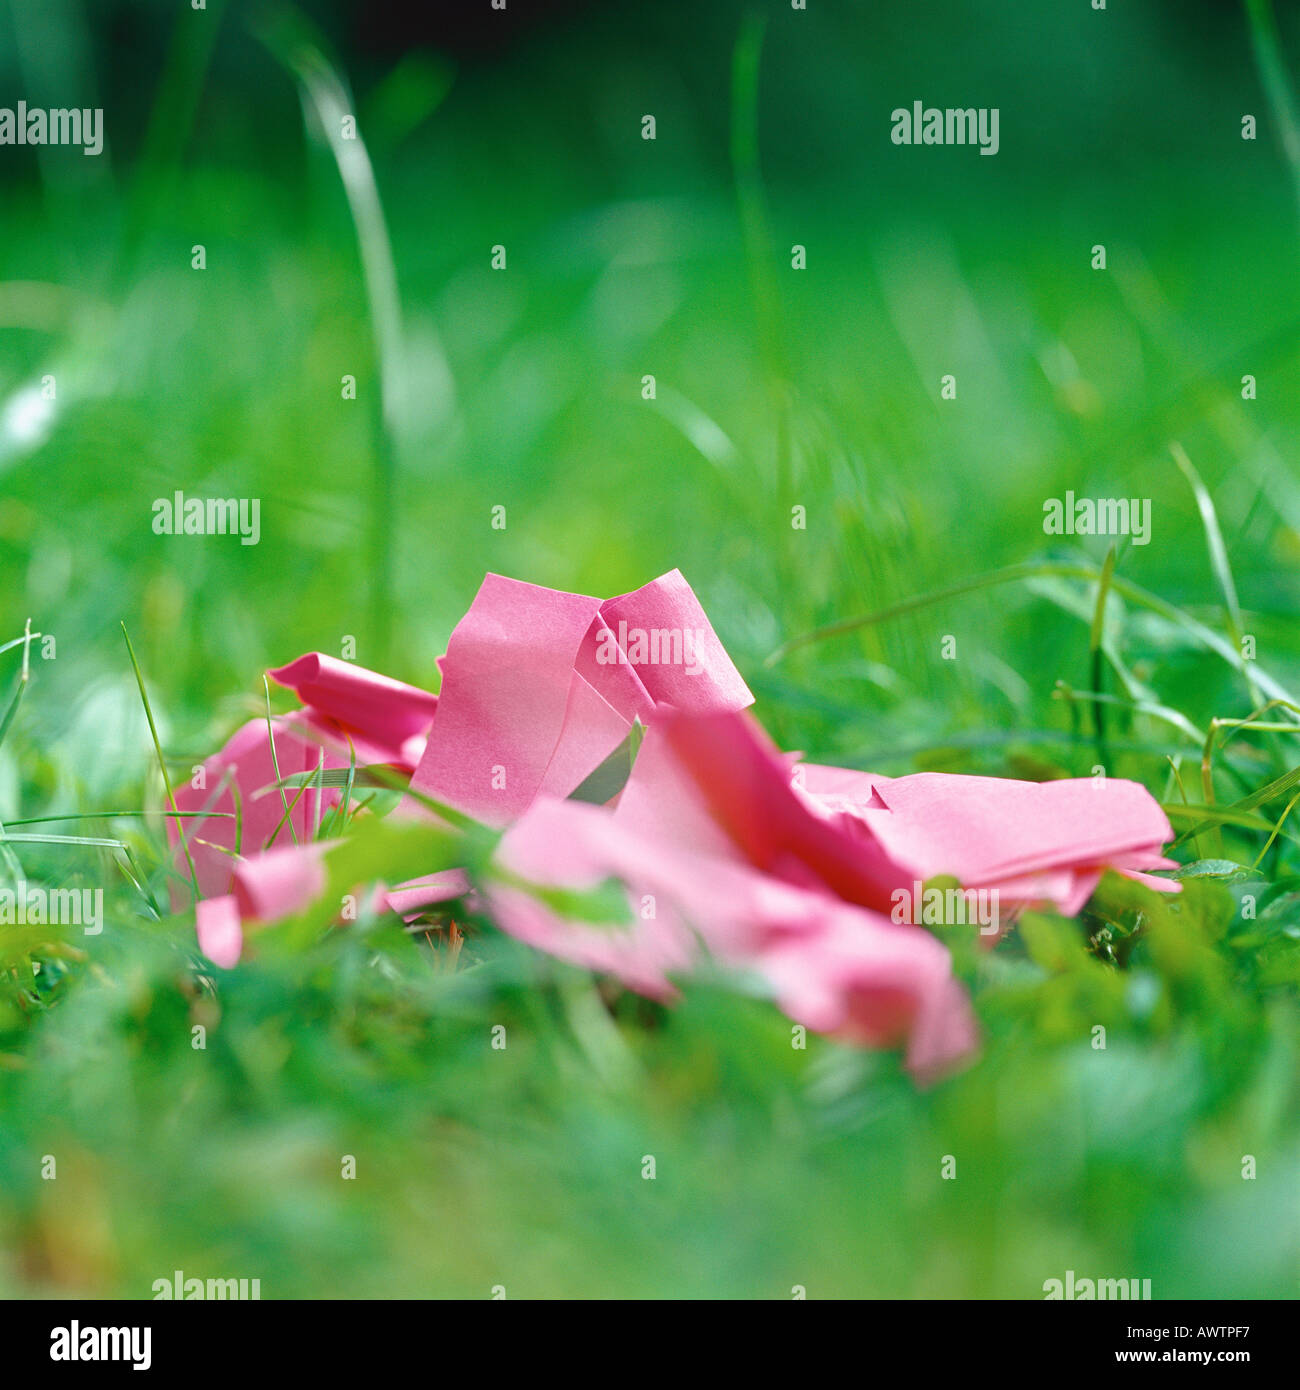 Crumpled pink paper in grass - Stock Image